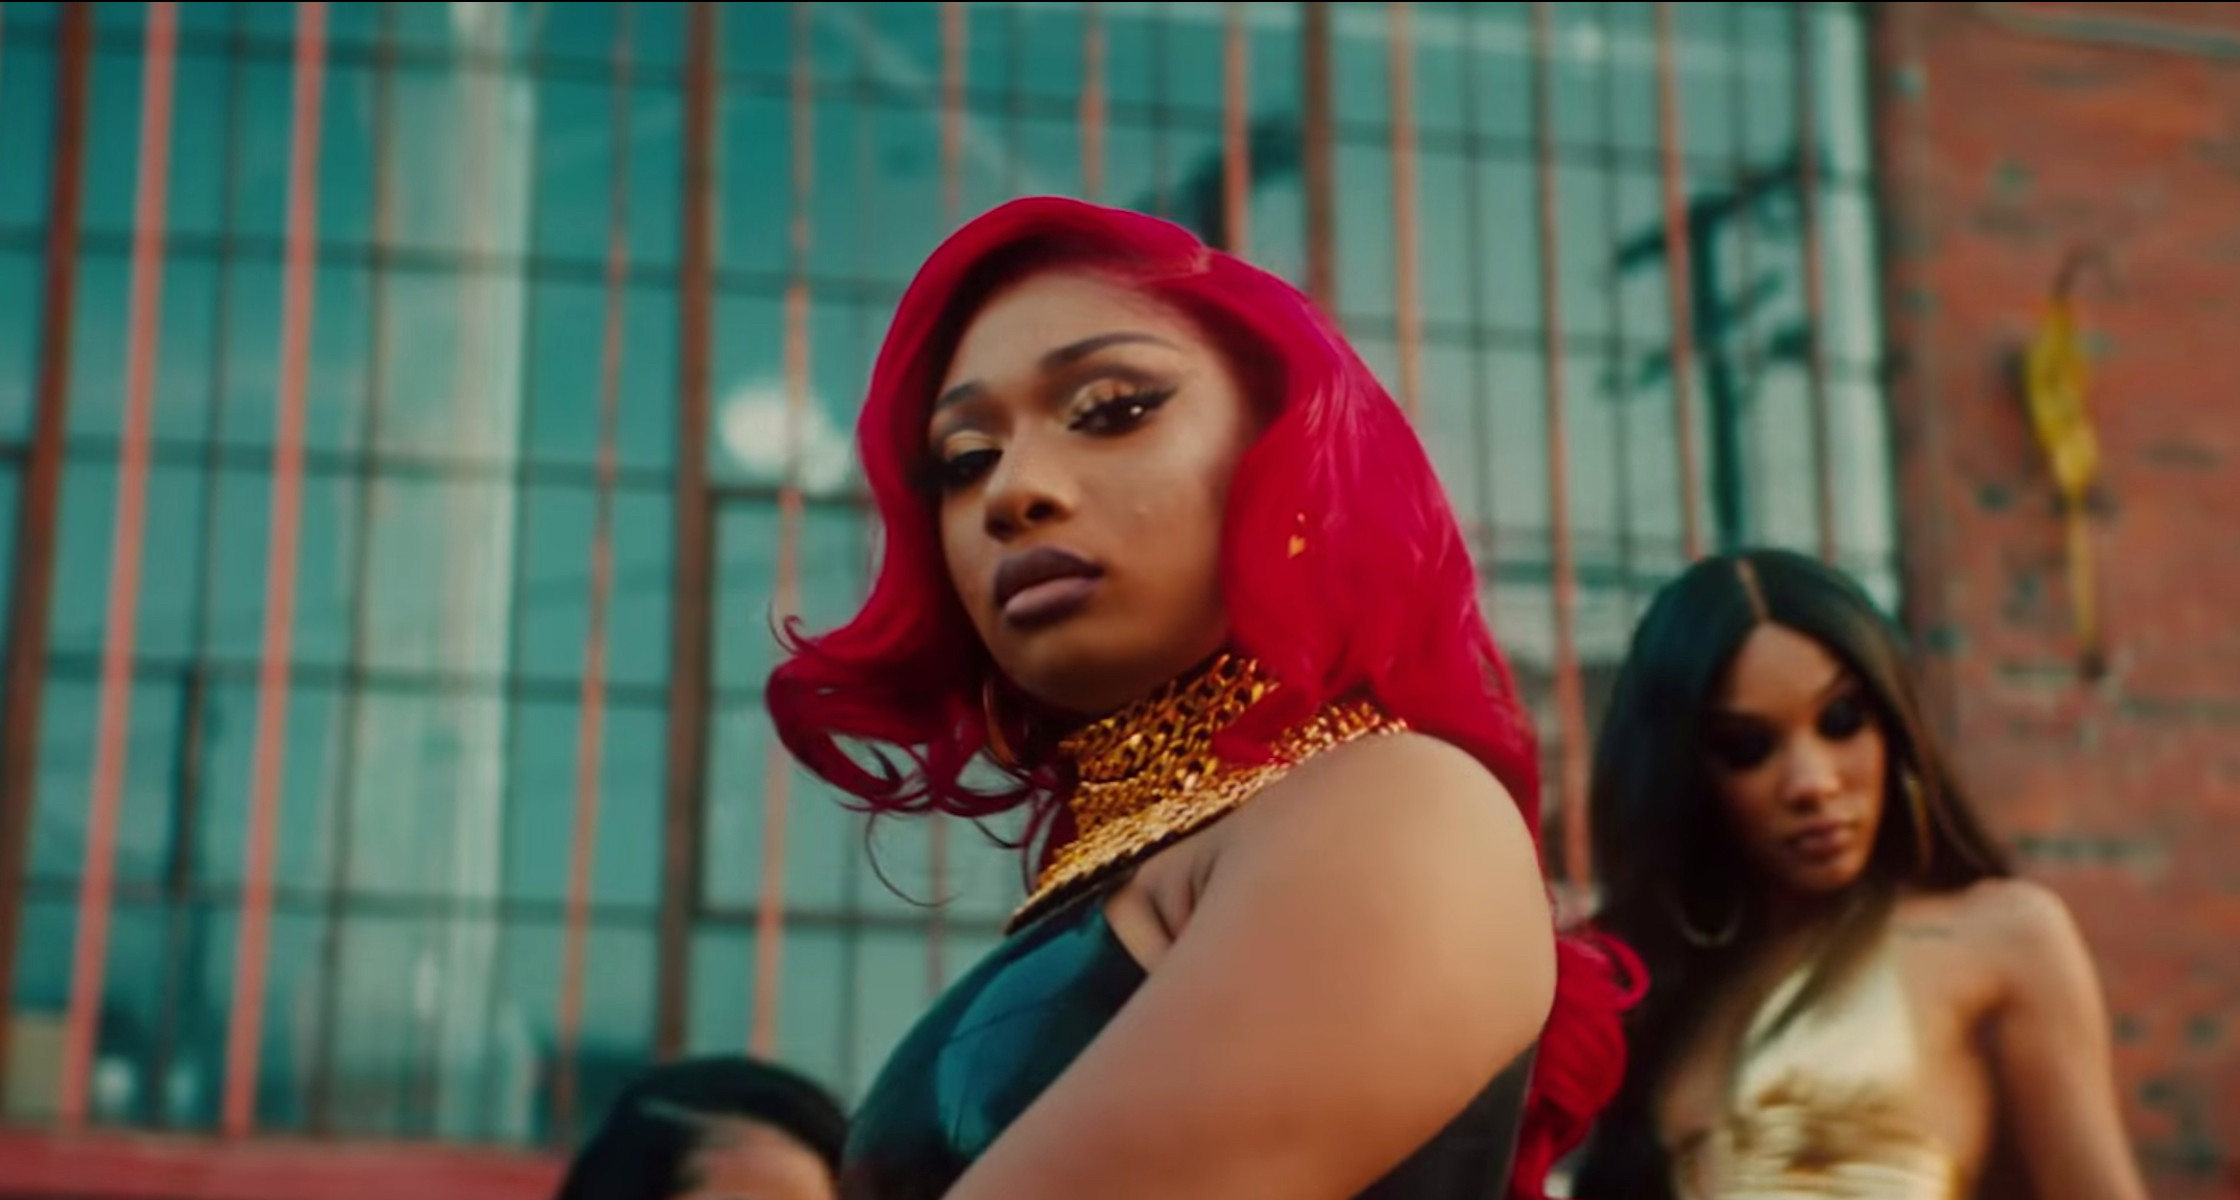 Megan Thee Stallion drops Blaxploitation-Flavored Video Get 'Realer'